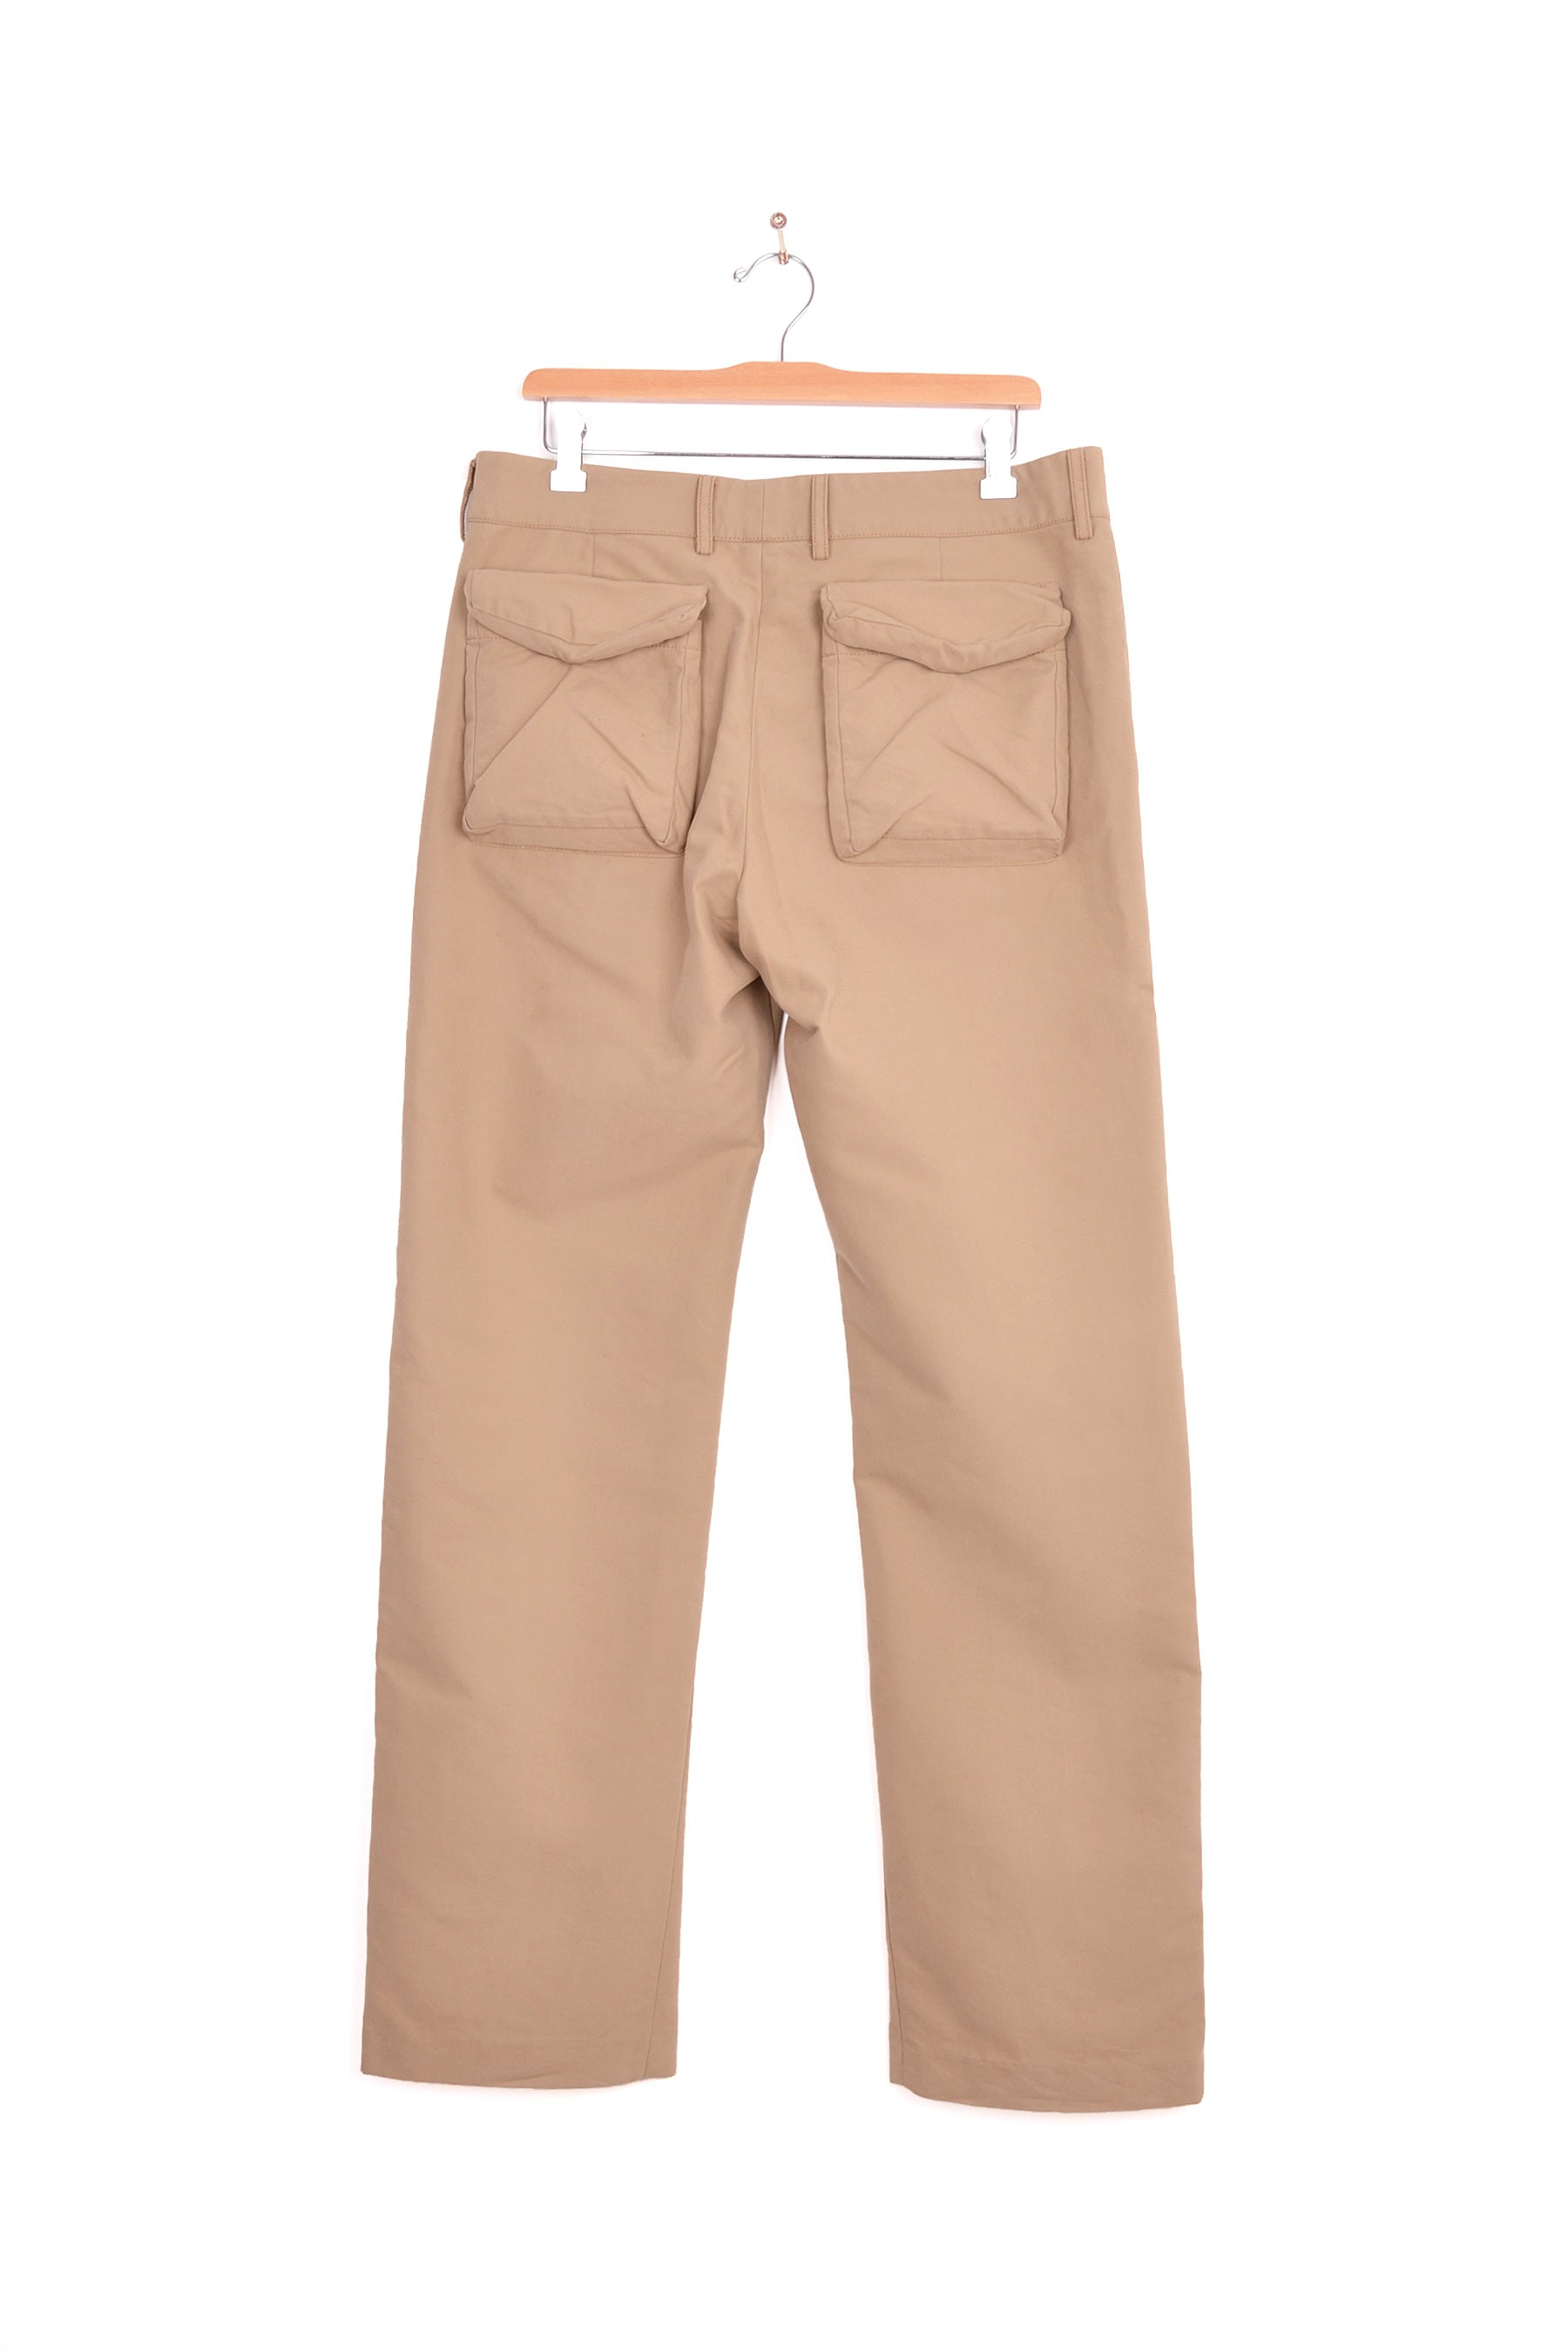 2006 A/W COTTON TROUSERS WITH 3-D MILITARY DETAILS